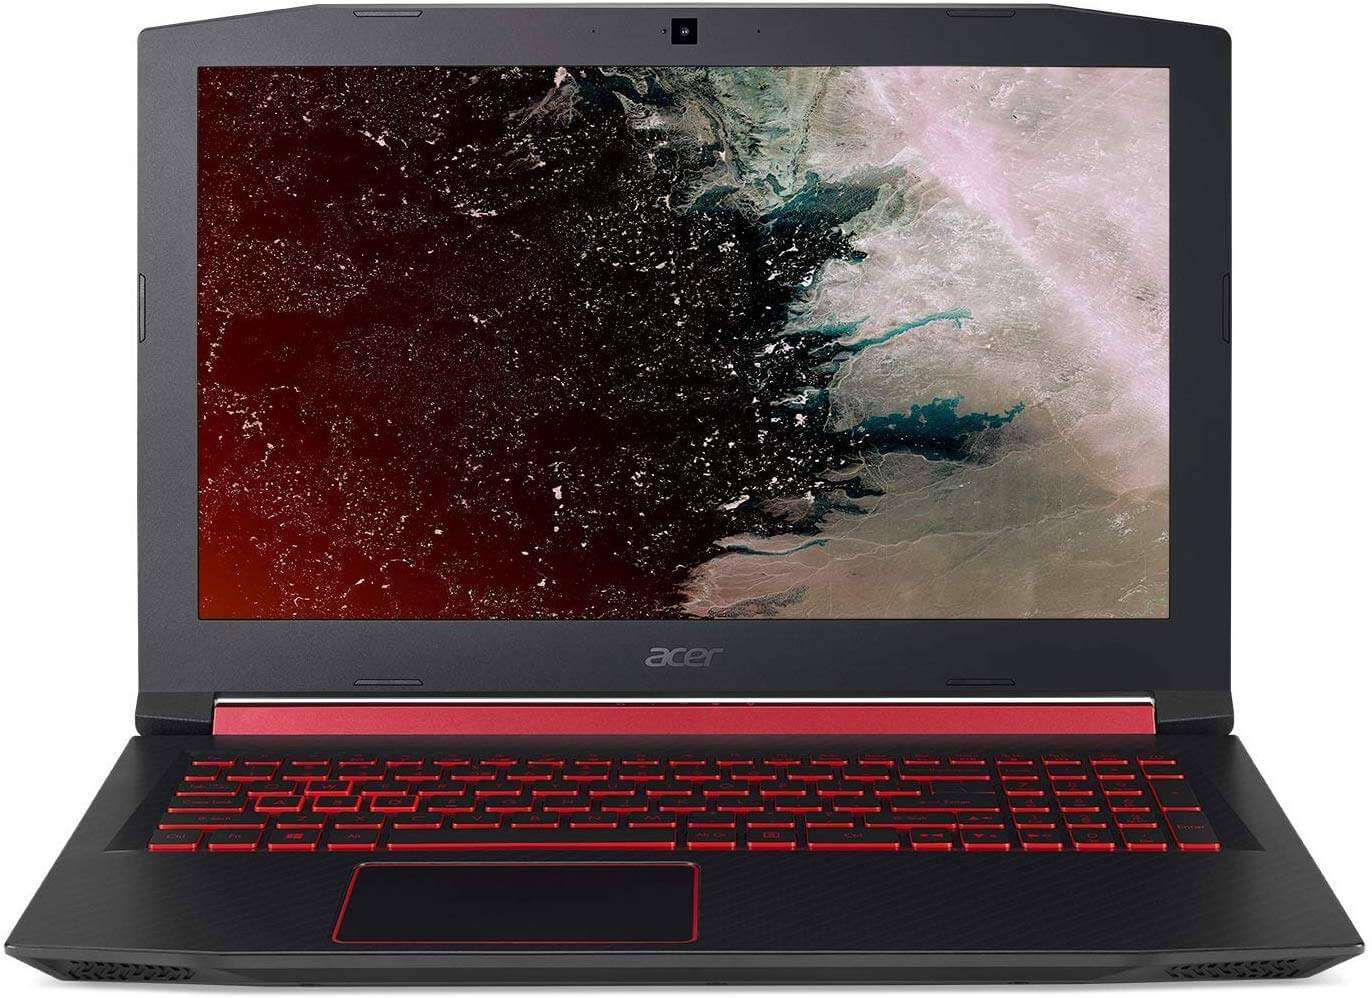 Acer Nitro 5 AN515-52-54EL Gaming Laptop With 15.6-Inch Display, Core i5 8300H Processor/8GB RAM/1TB HDD+128GB SSD/4GB NVIDIA GeForce GTX 1050 Graphics Card Black